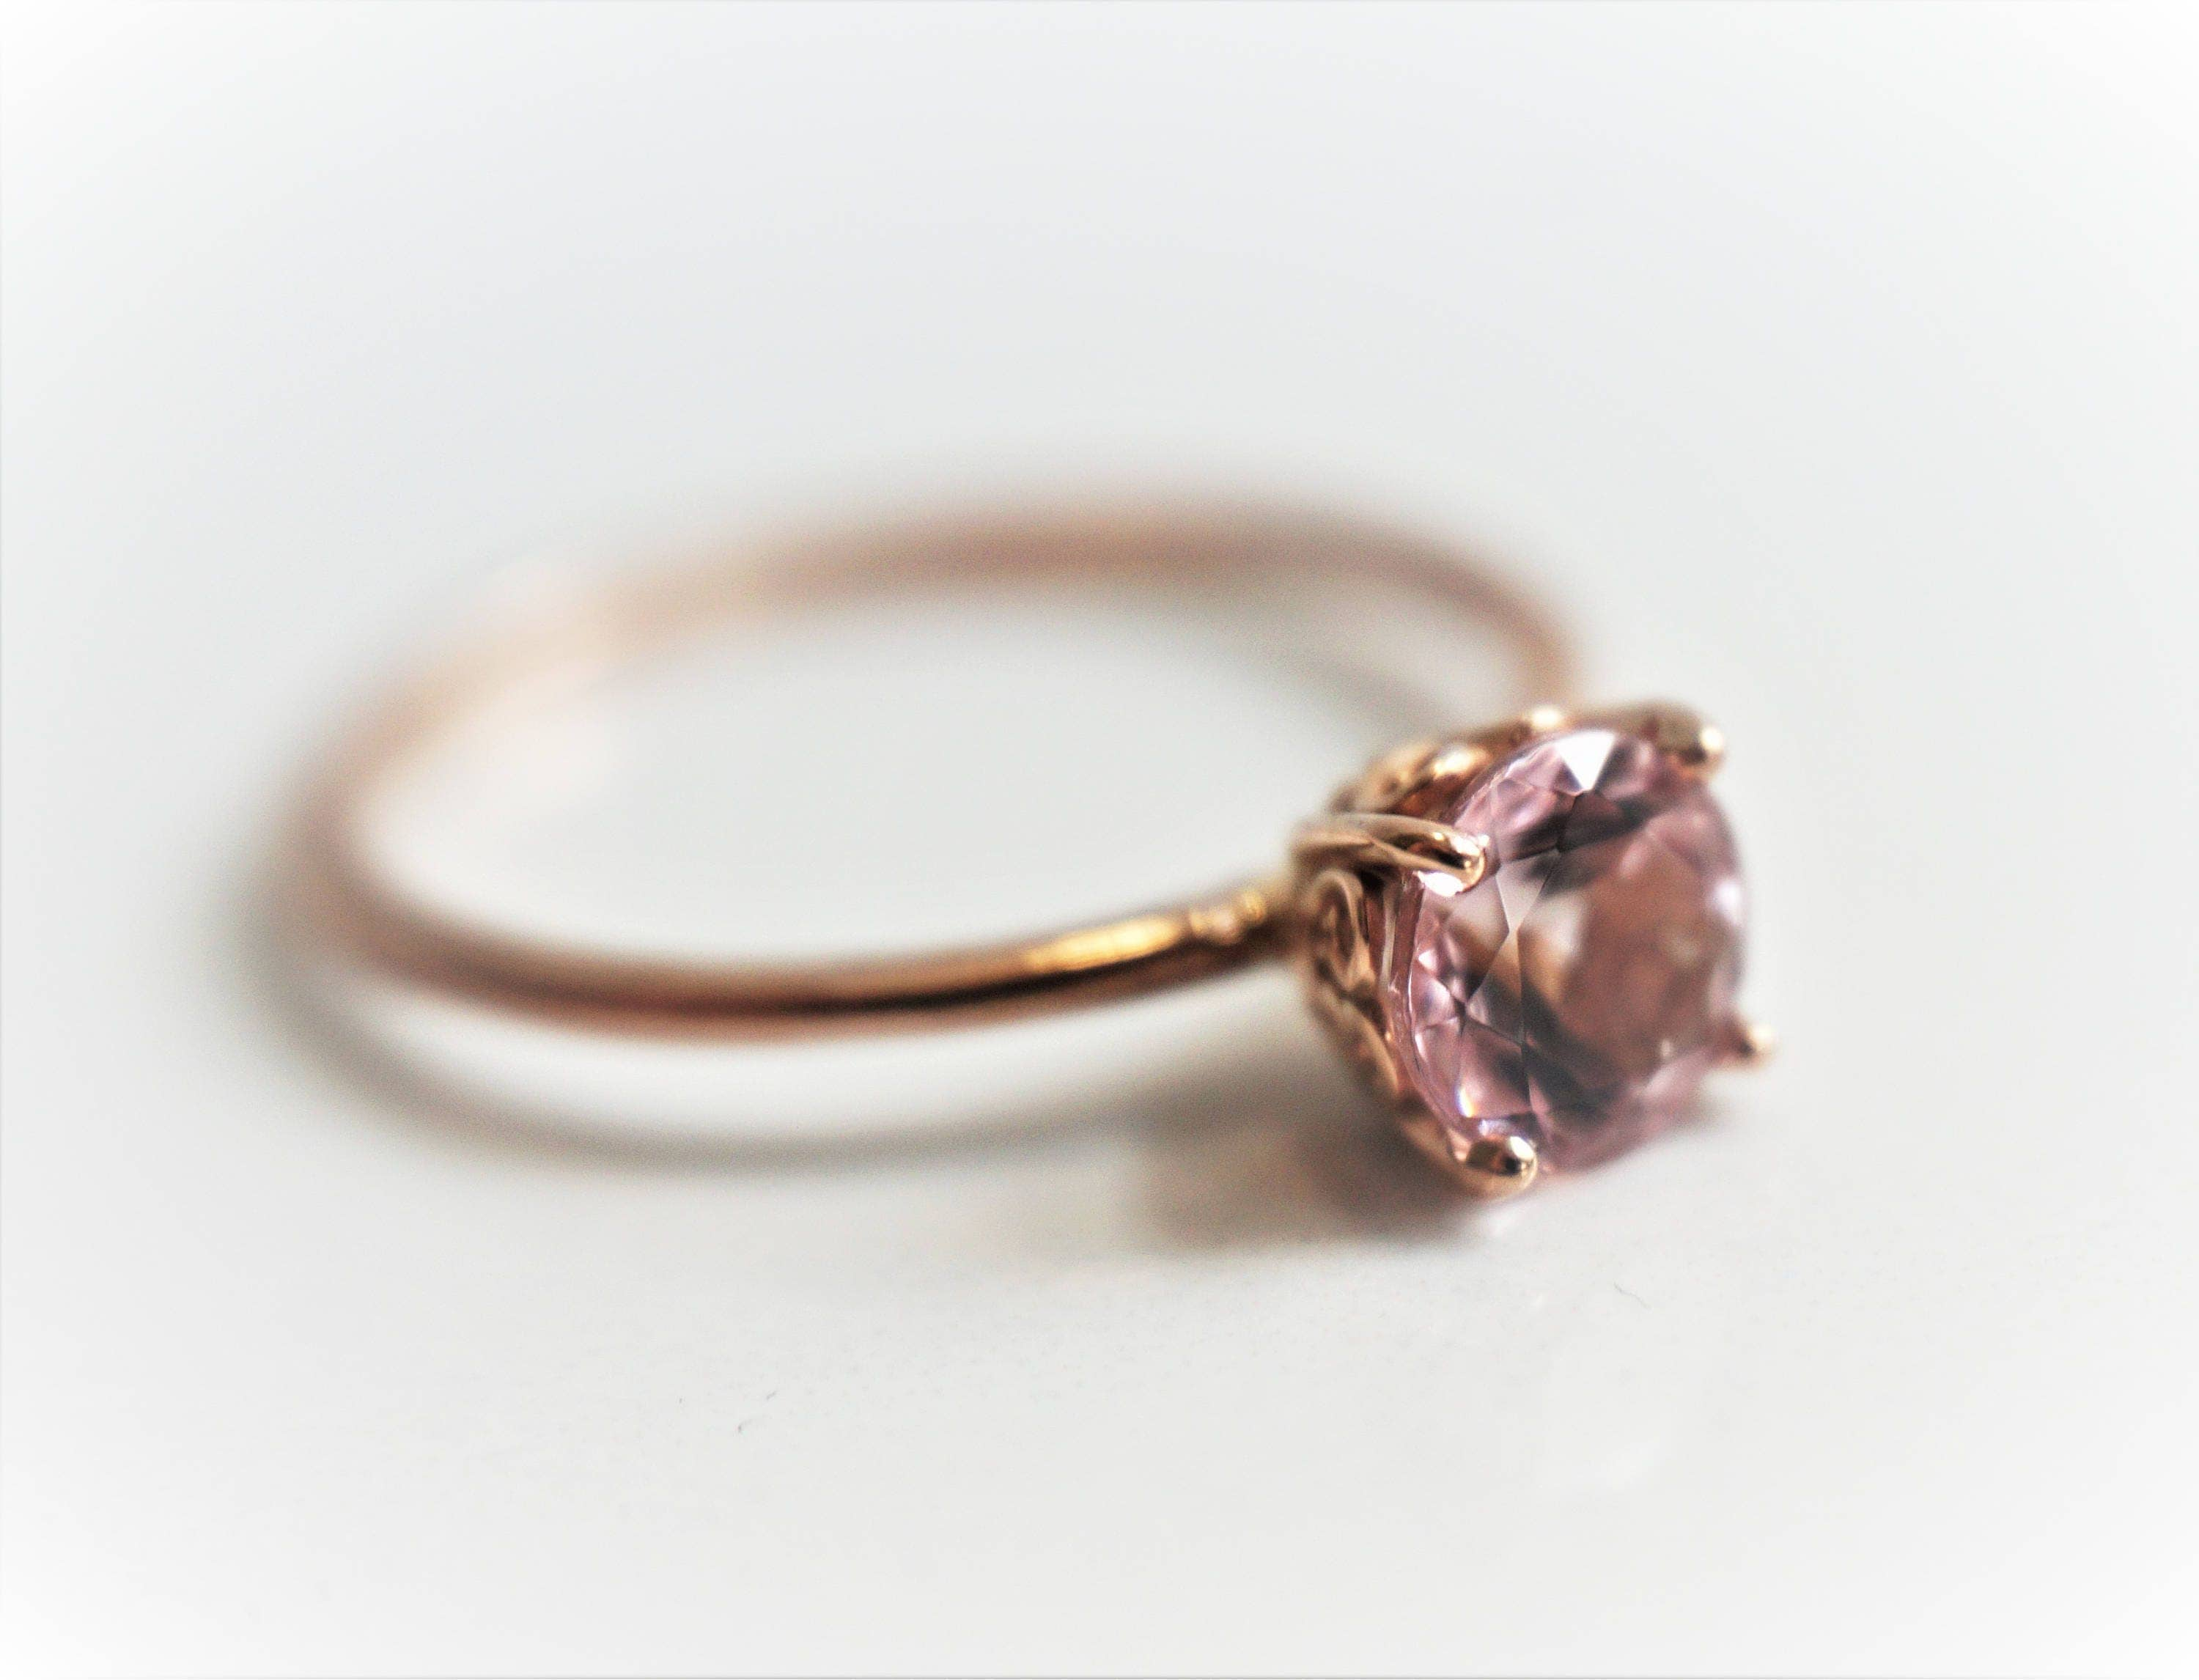 Slender Solitaire 6 mm Baby Pink Morganite Ring 14K Rose Gold